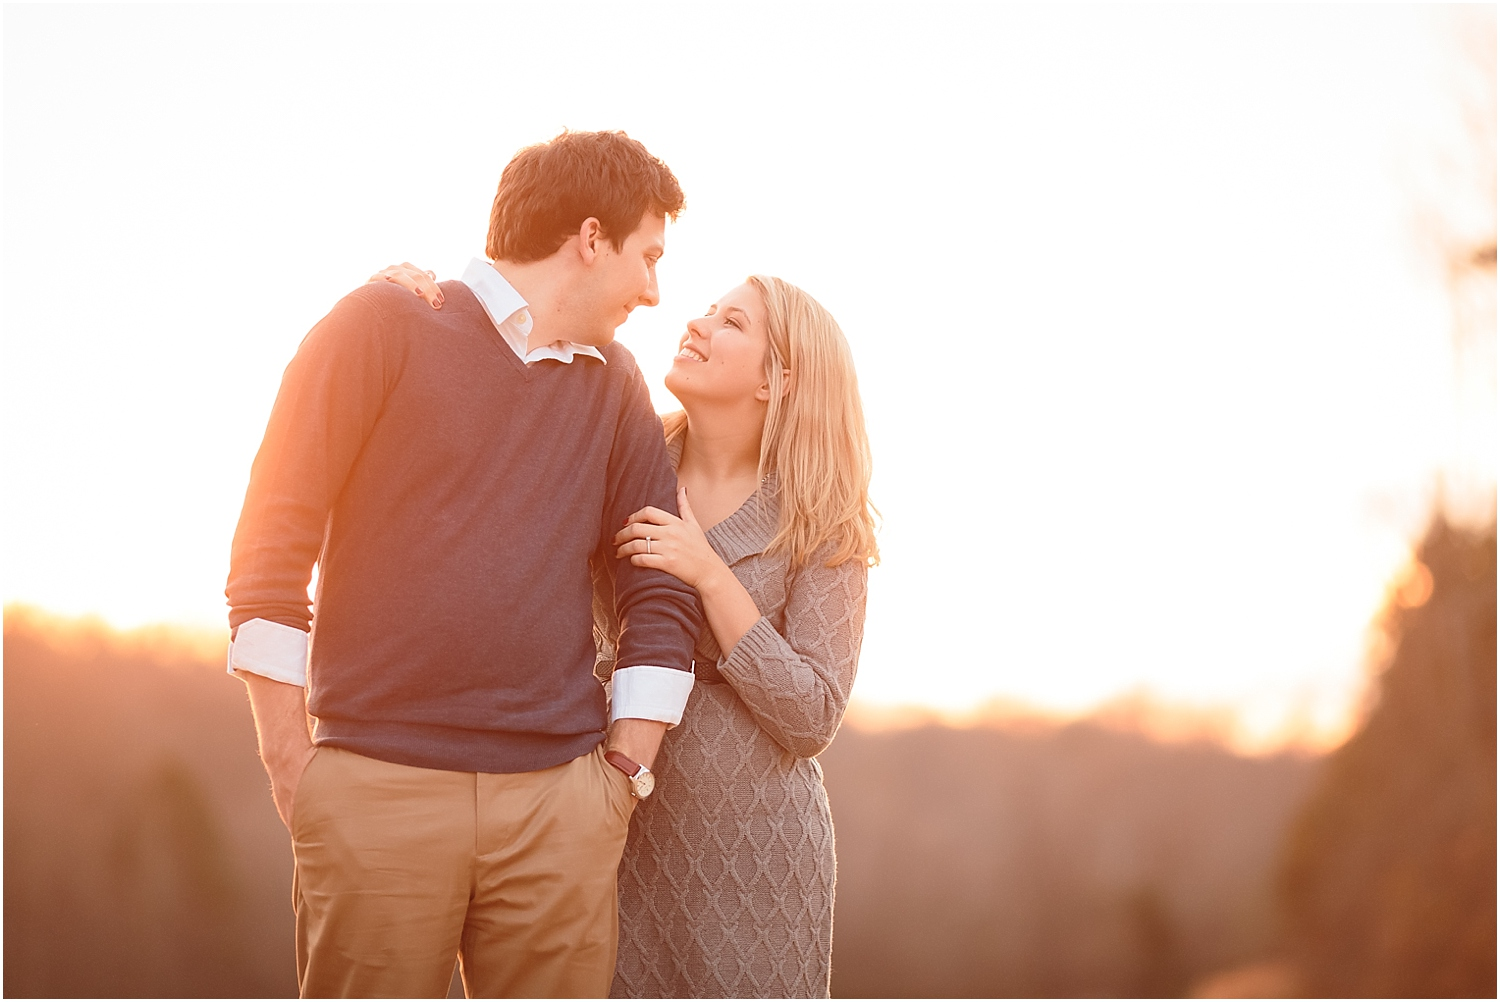 141207--0462clemson-engagement-shoot_blog.jpg